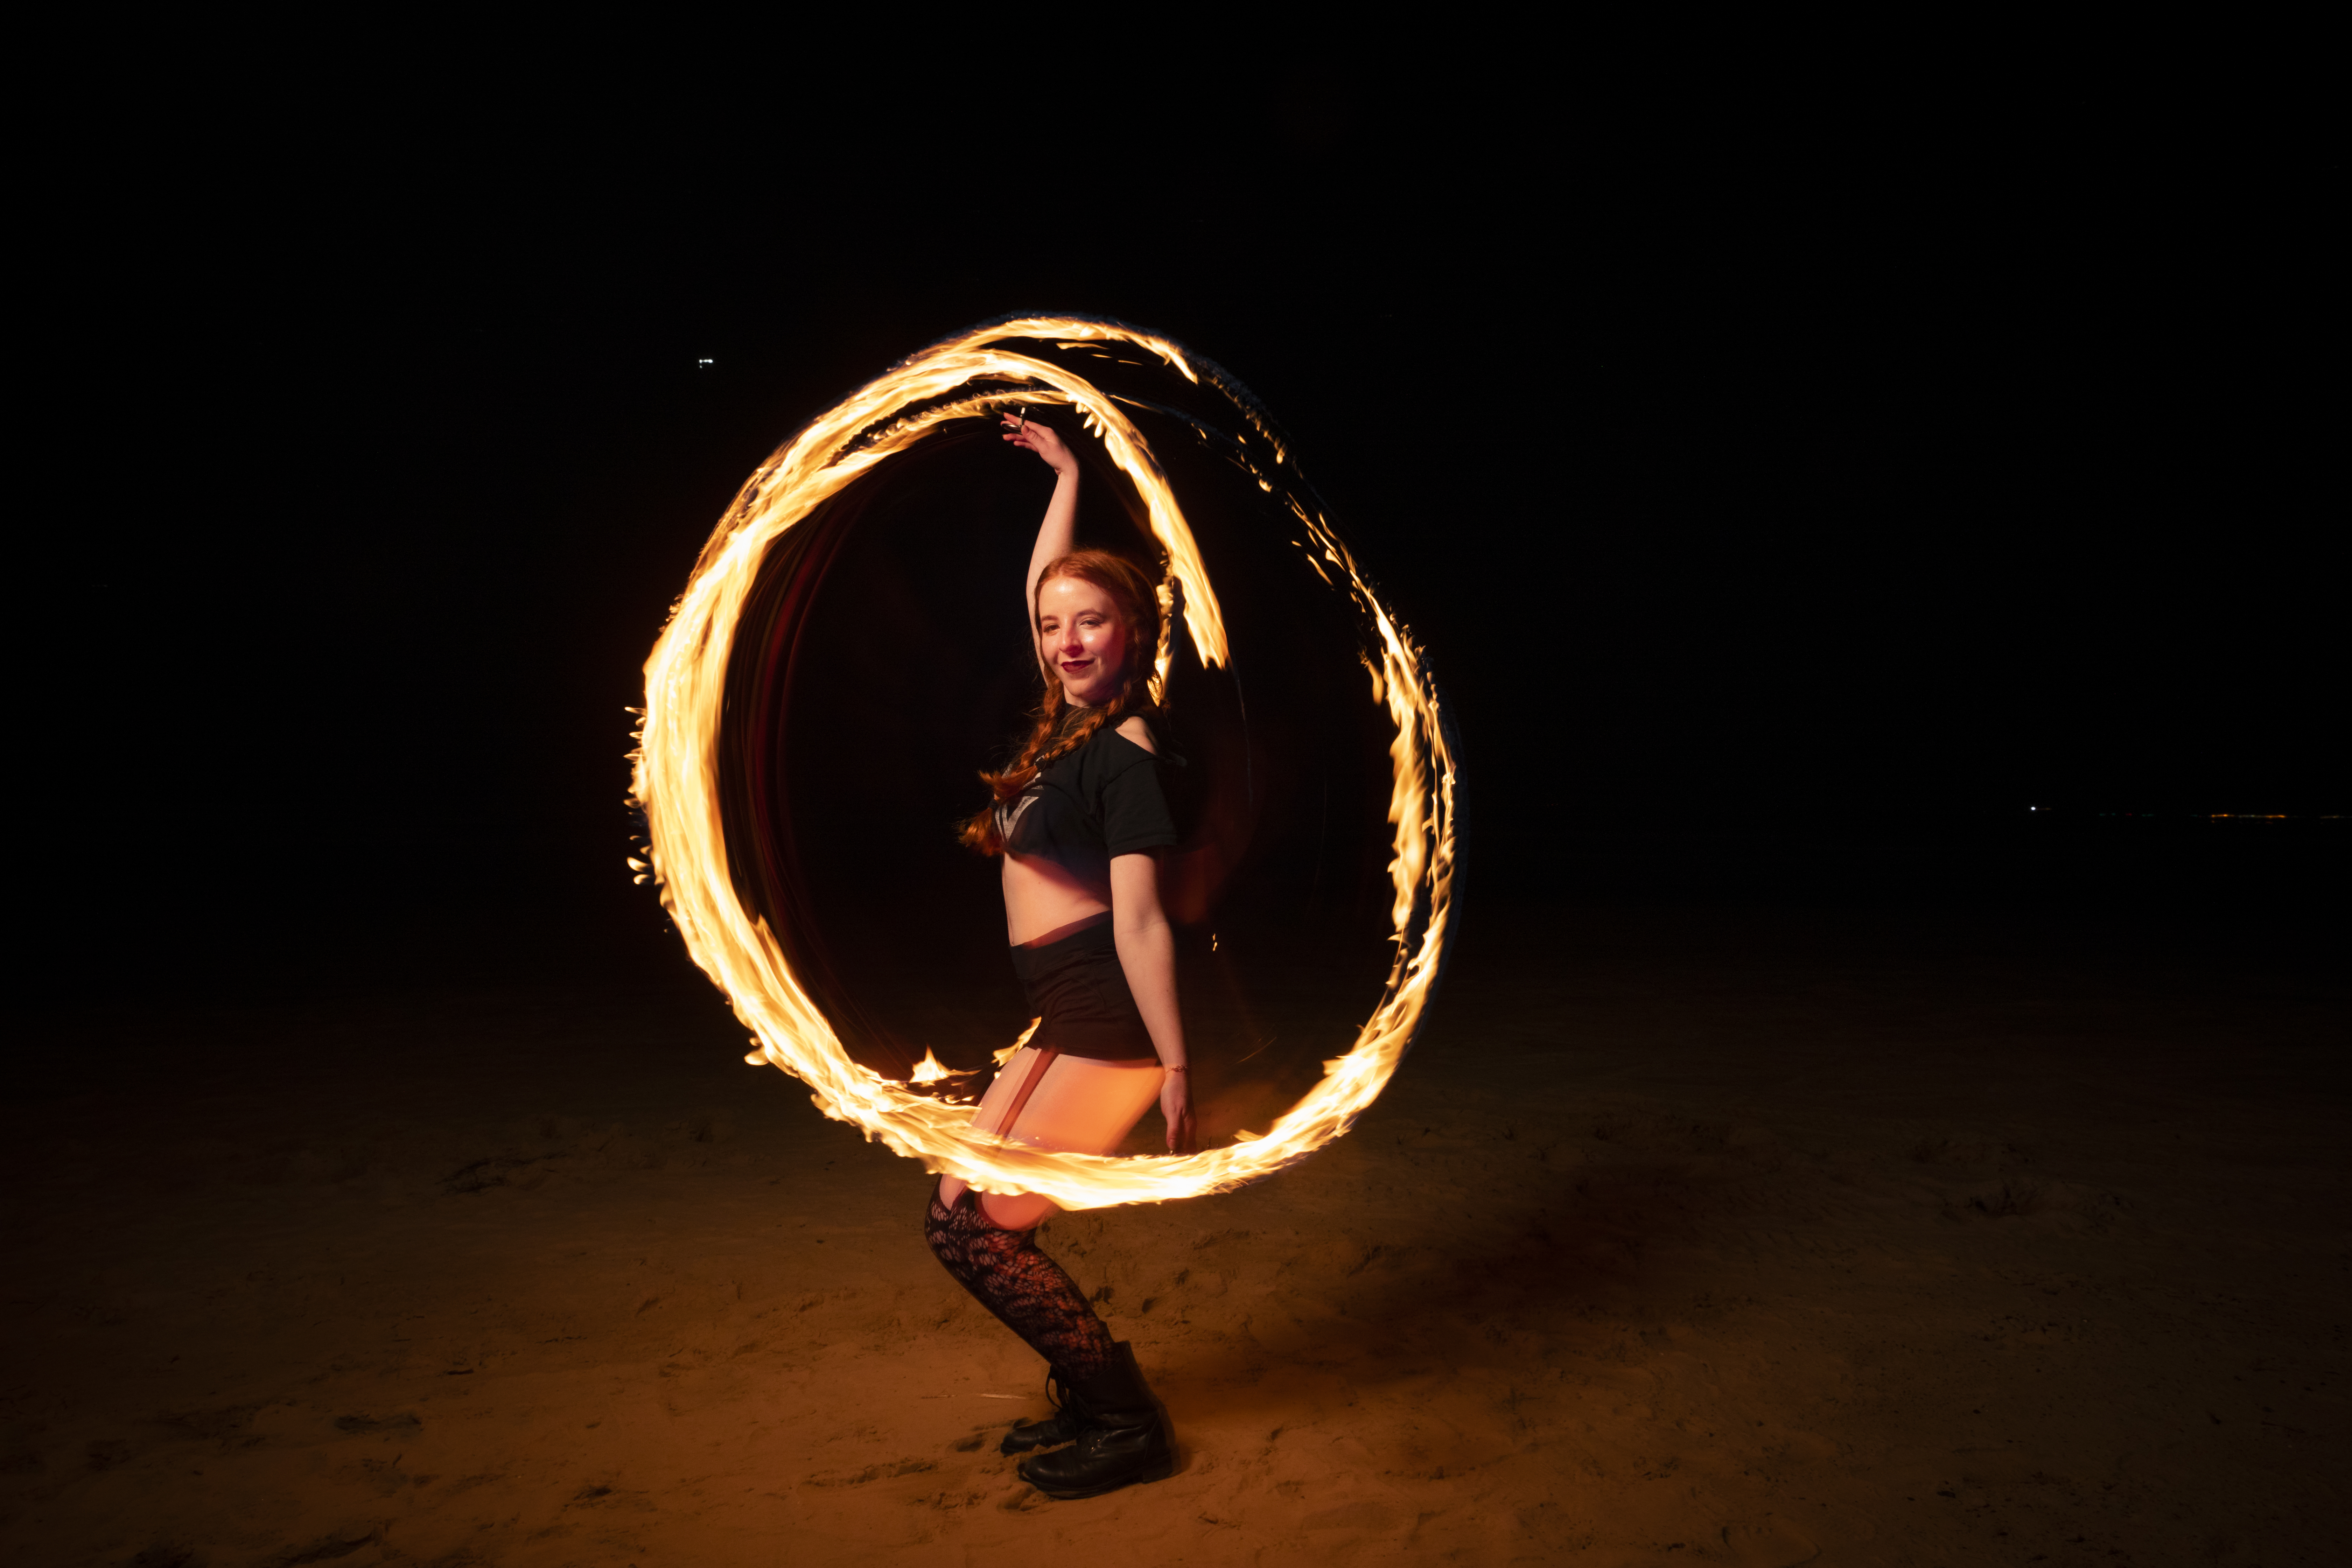 A young woman stands on the sand illuminated by an apparent ring of fire.